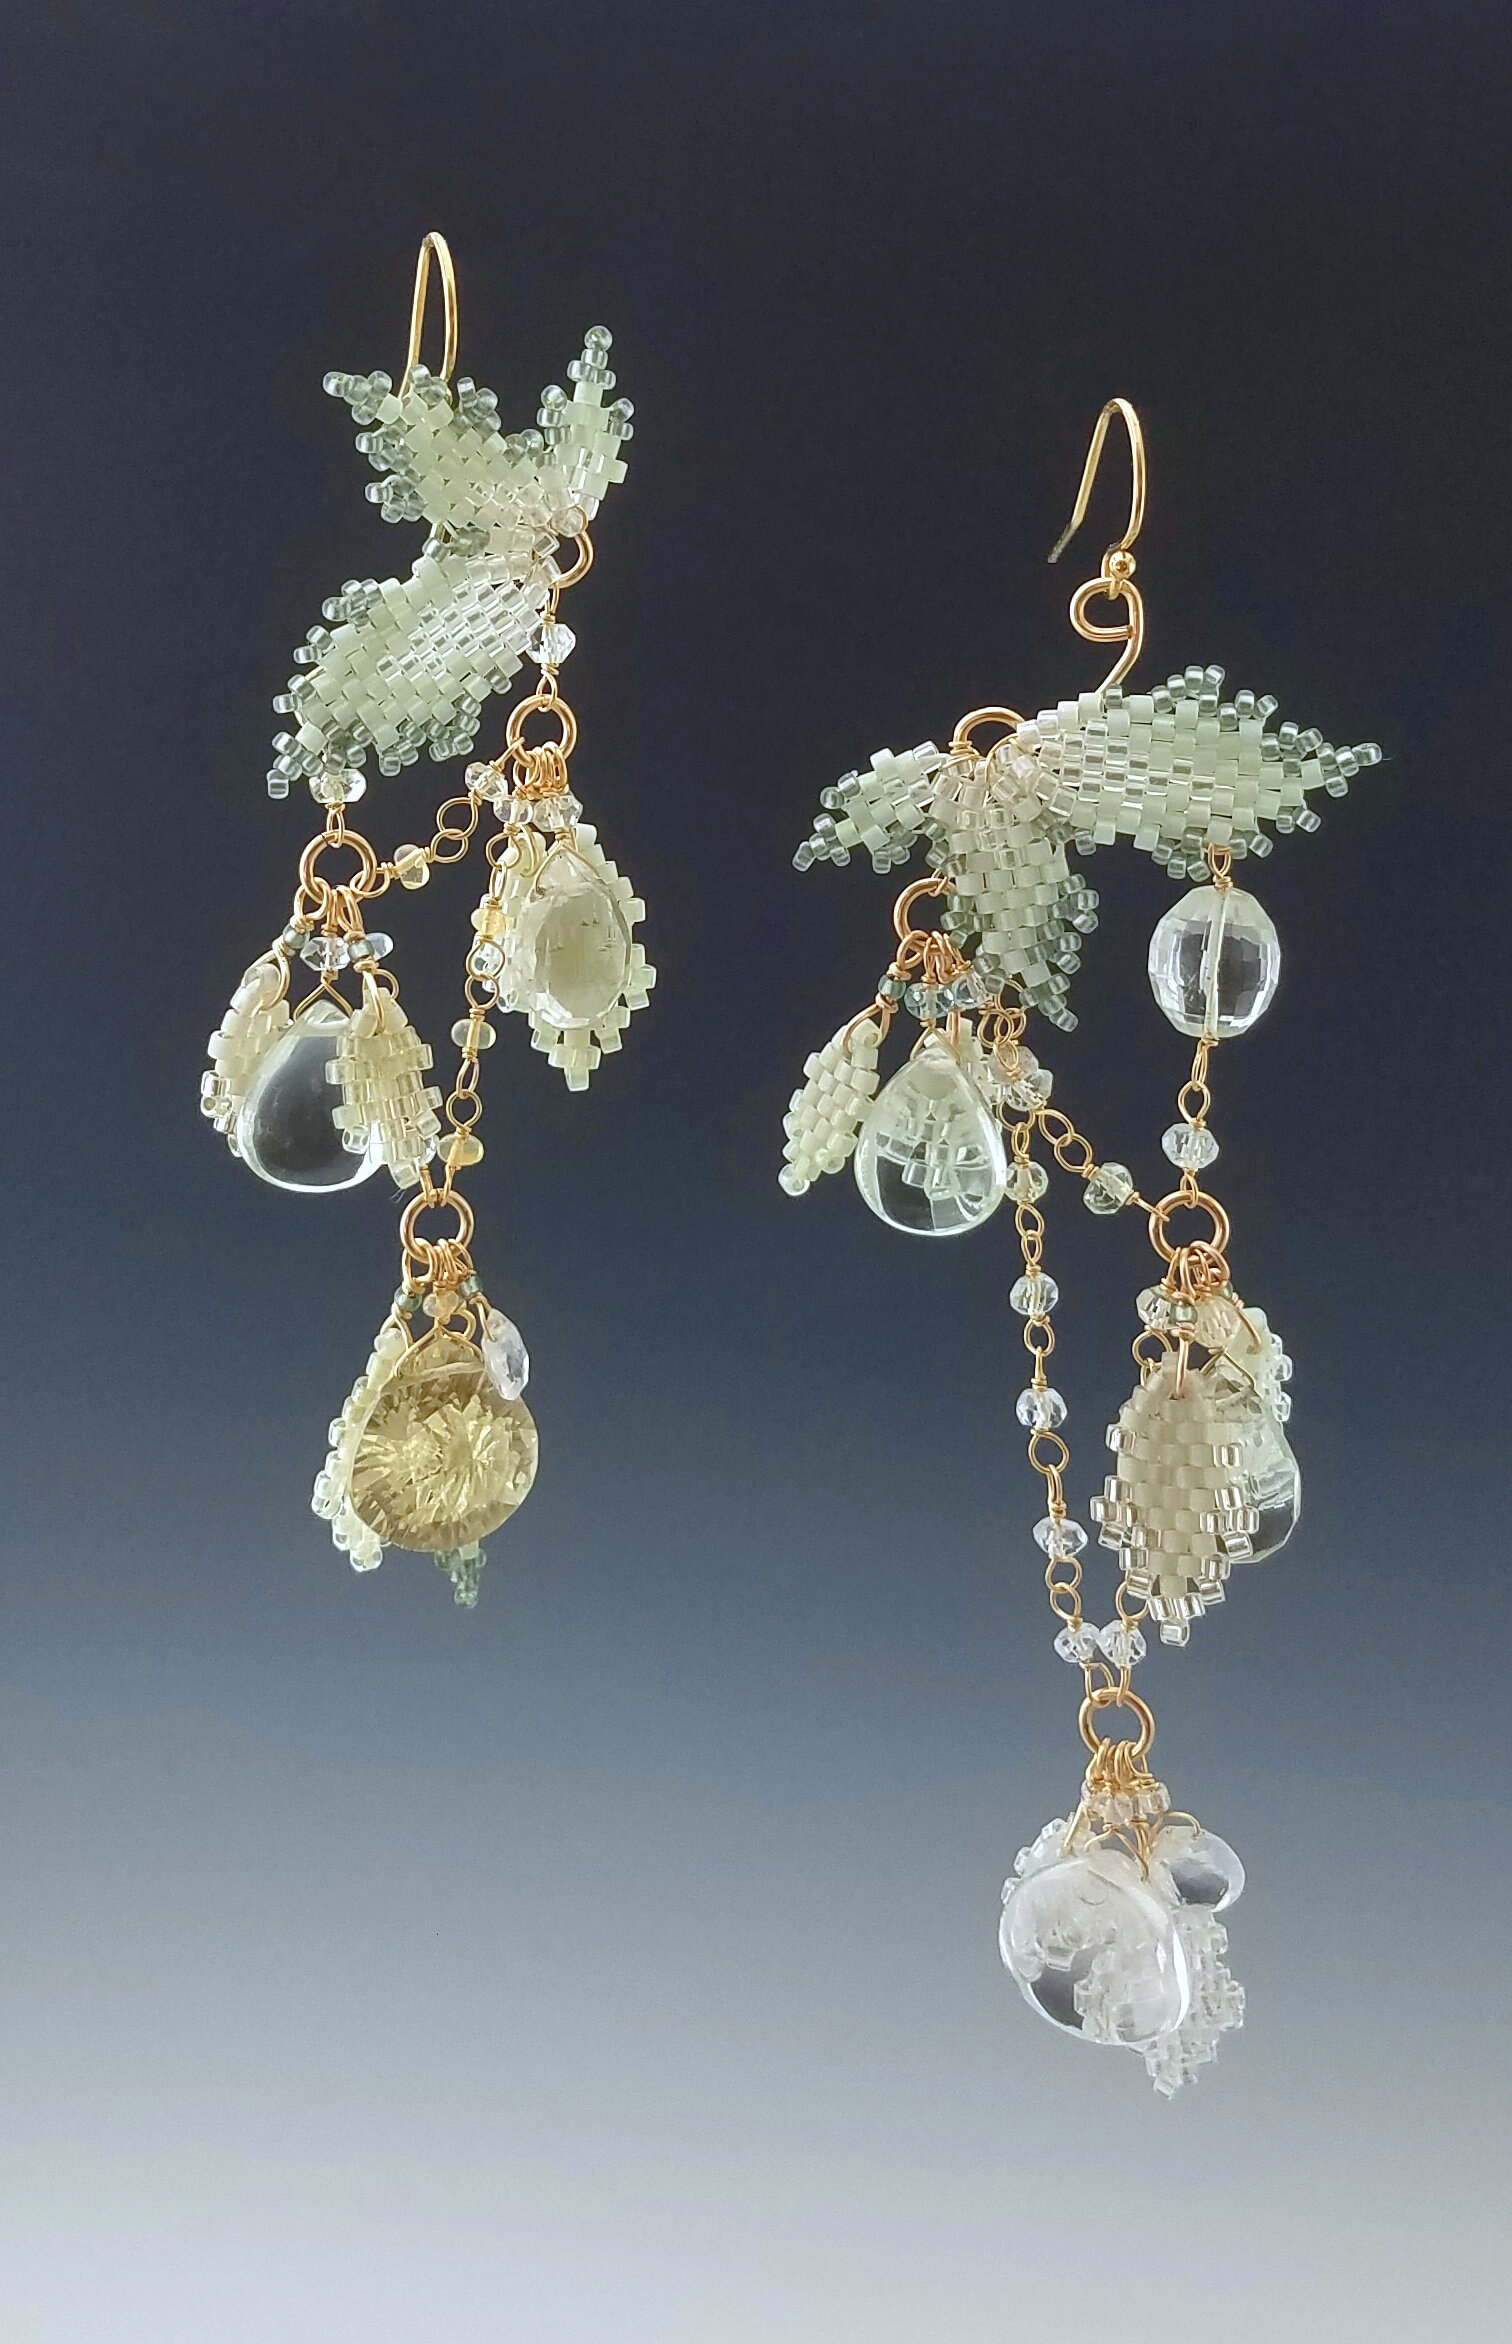 Hand-sewn gold earrings with beads and crystals.